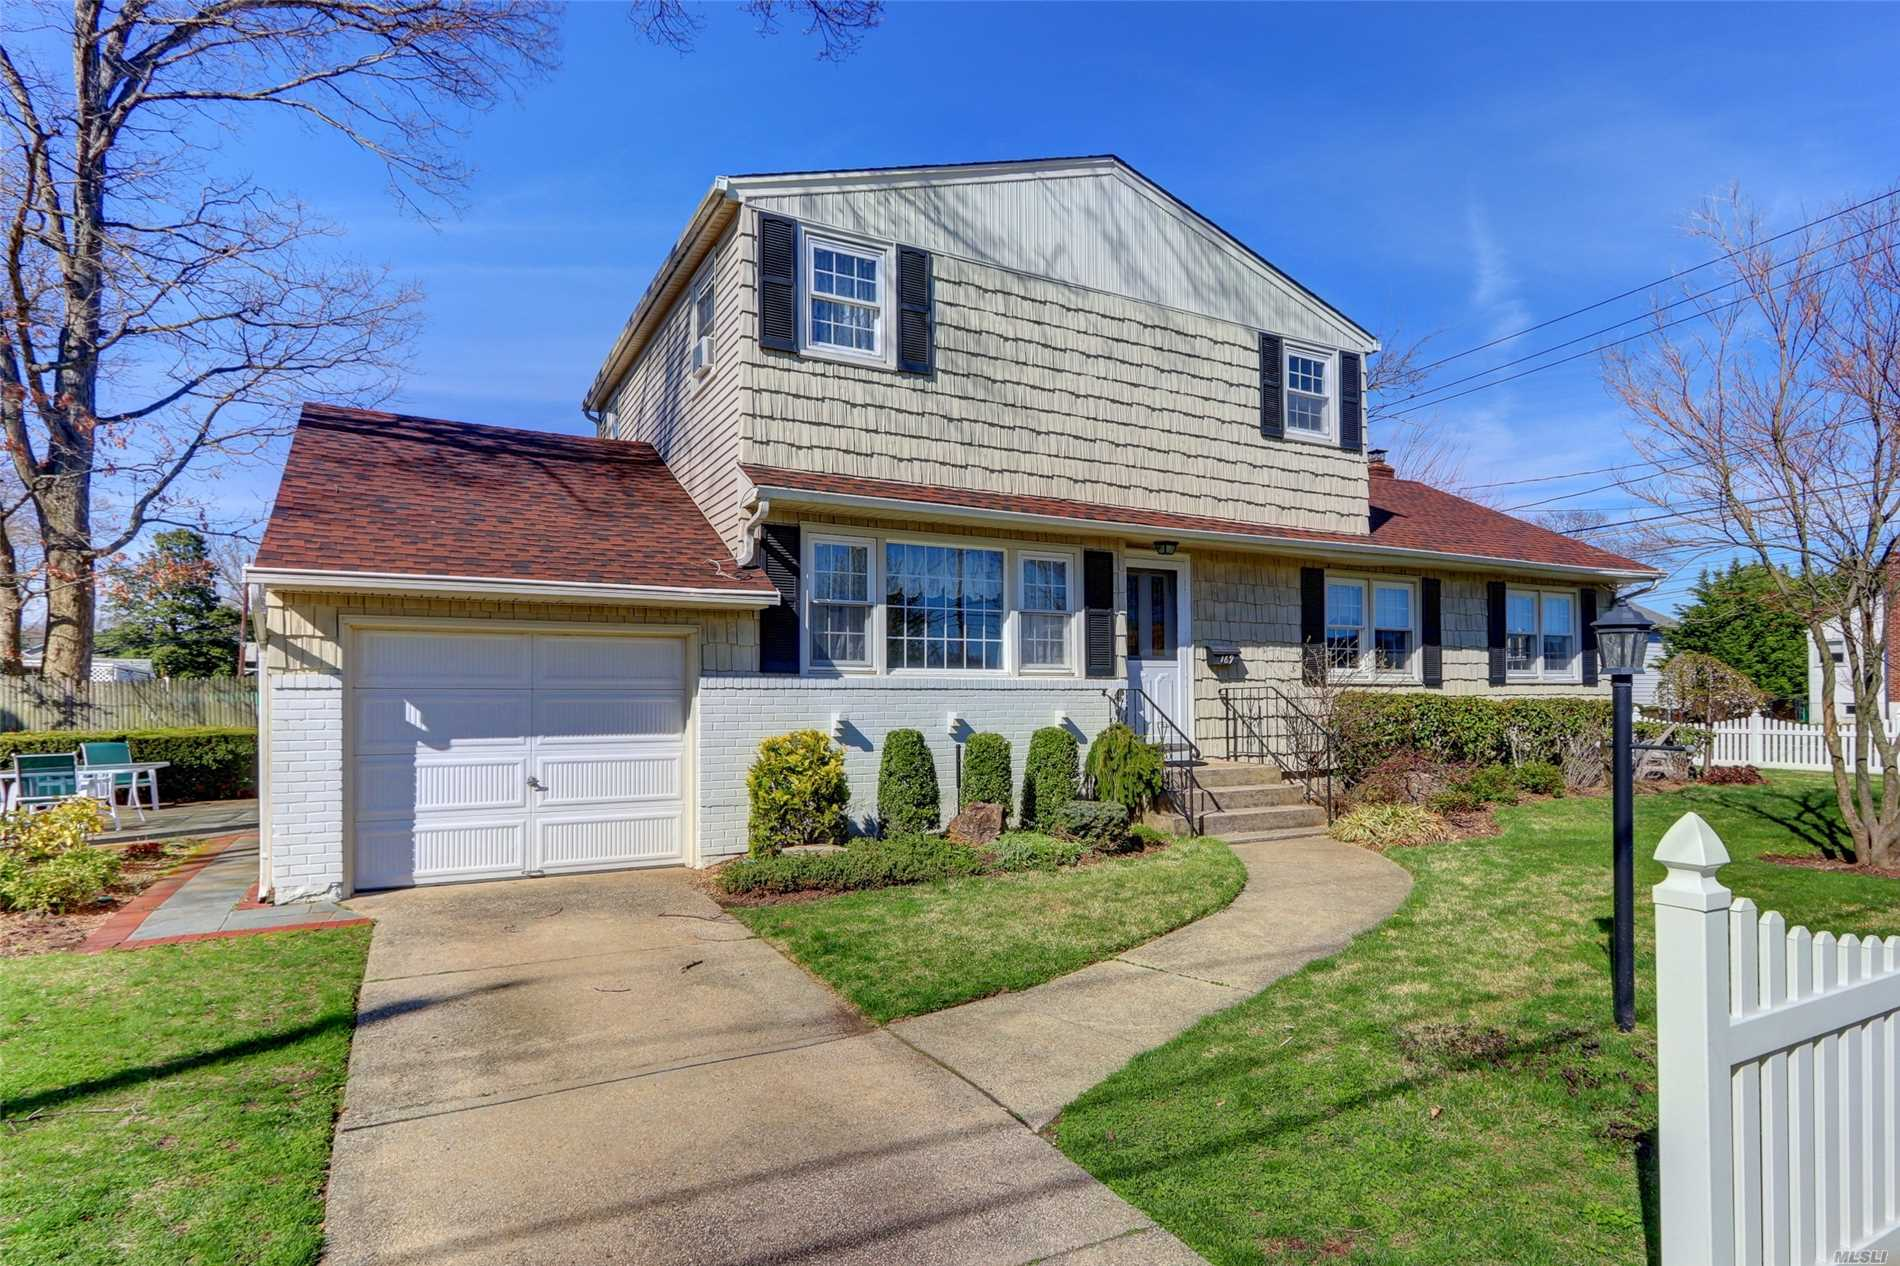 Fabulous 3 Bedroom Expanded Ranch In The Heart Of Massapequa Park. This Great Home Features Very Large Master Bedroomon on Main Level, office, Full Bath, Eat-In-Kitchen, Dining Room, Living Room. Upper Level - 2 Full Bedrooms, Full Bath, Huge Walk In Closet. Newer Roof & Heating System, Massapequa Schools, Mckenna Elementary. Bring Your Own Personal Touch To This Diamond In The Rough!